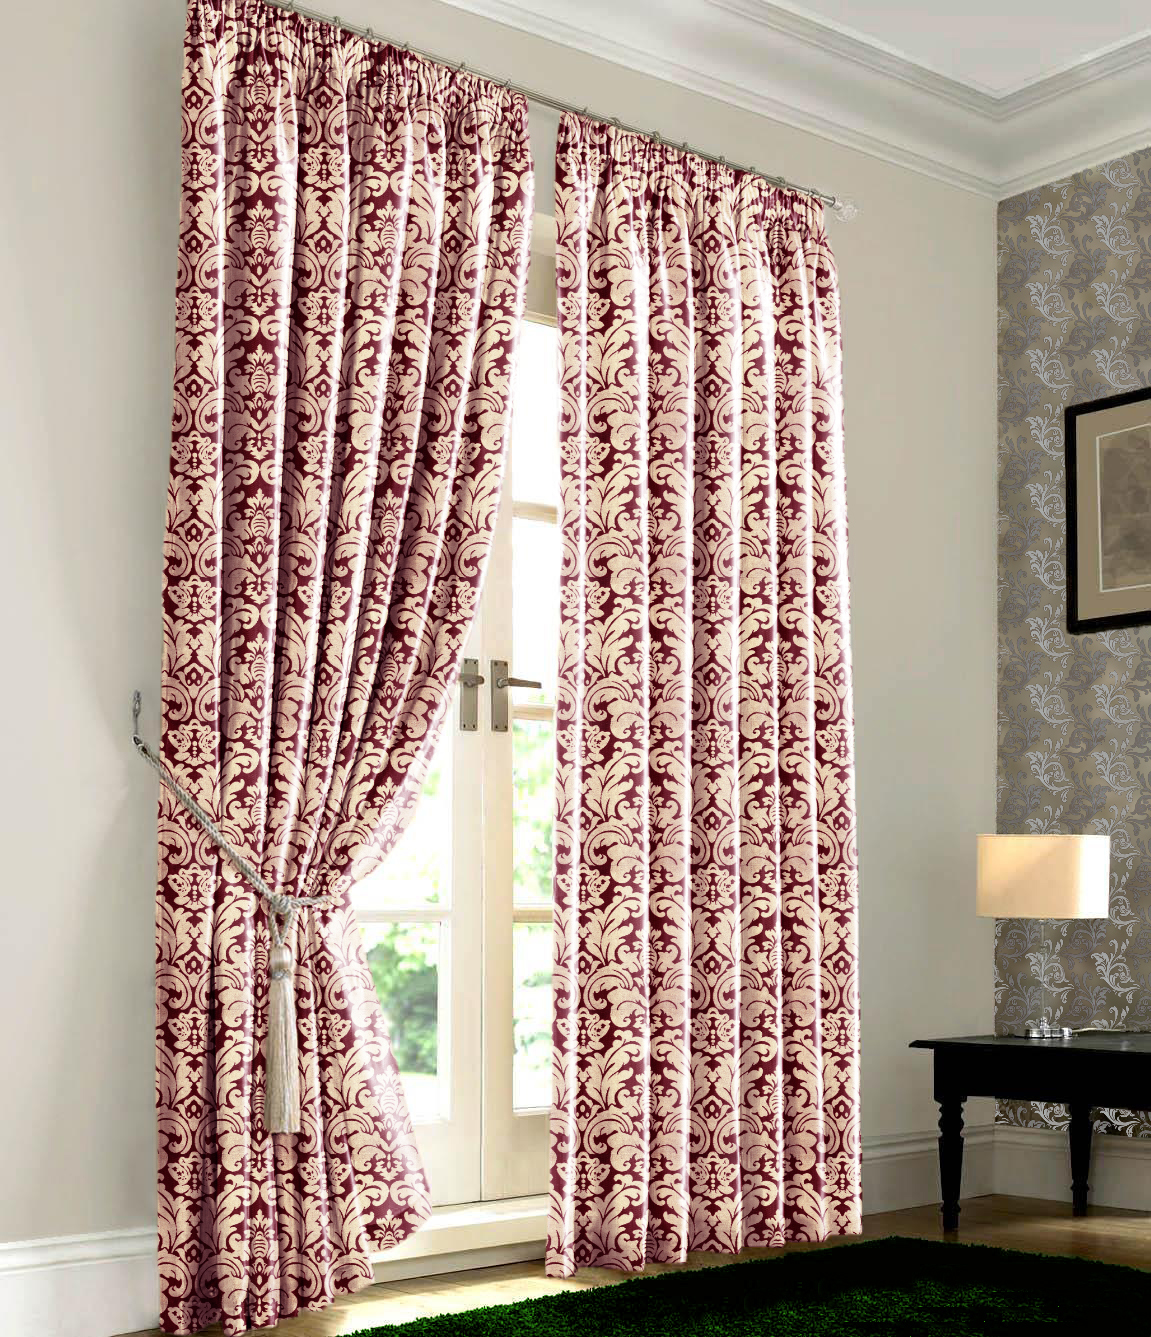 Lined bedroom curtains